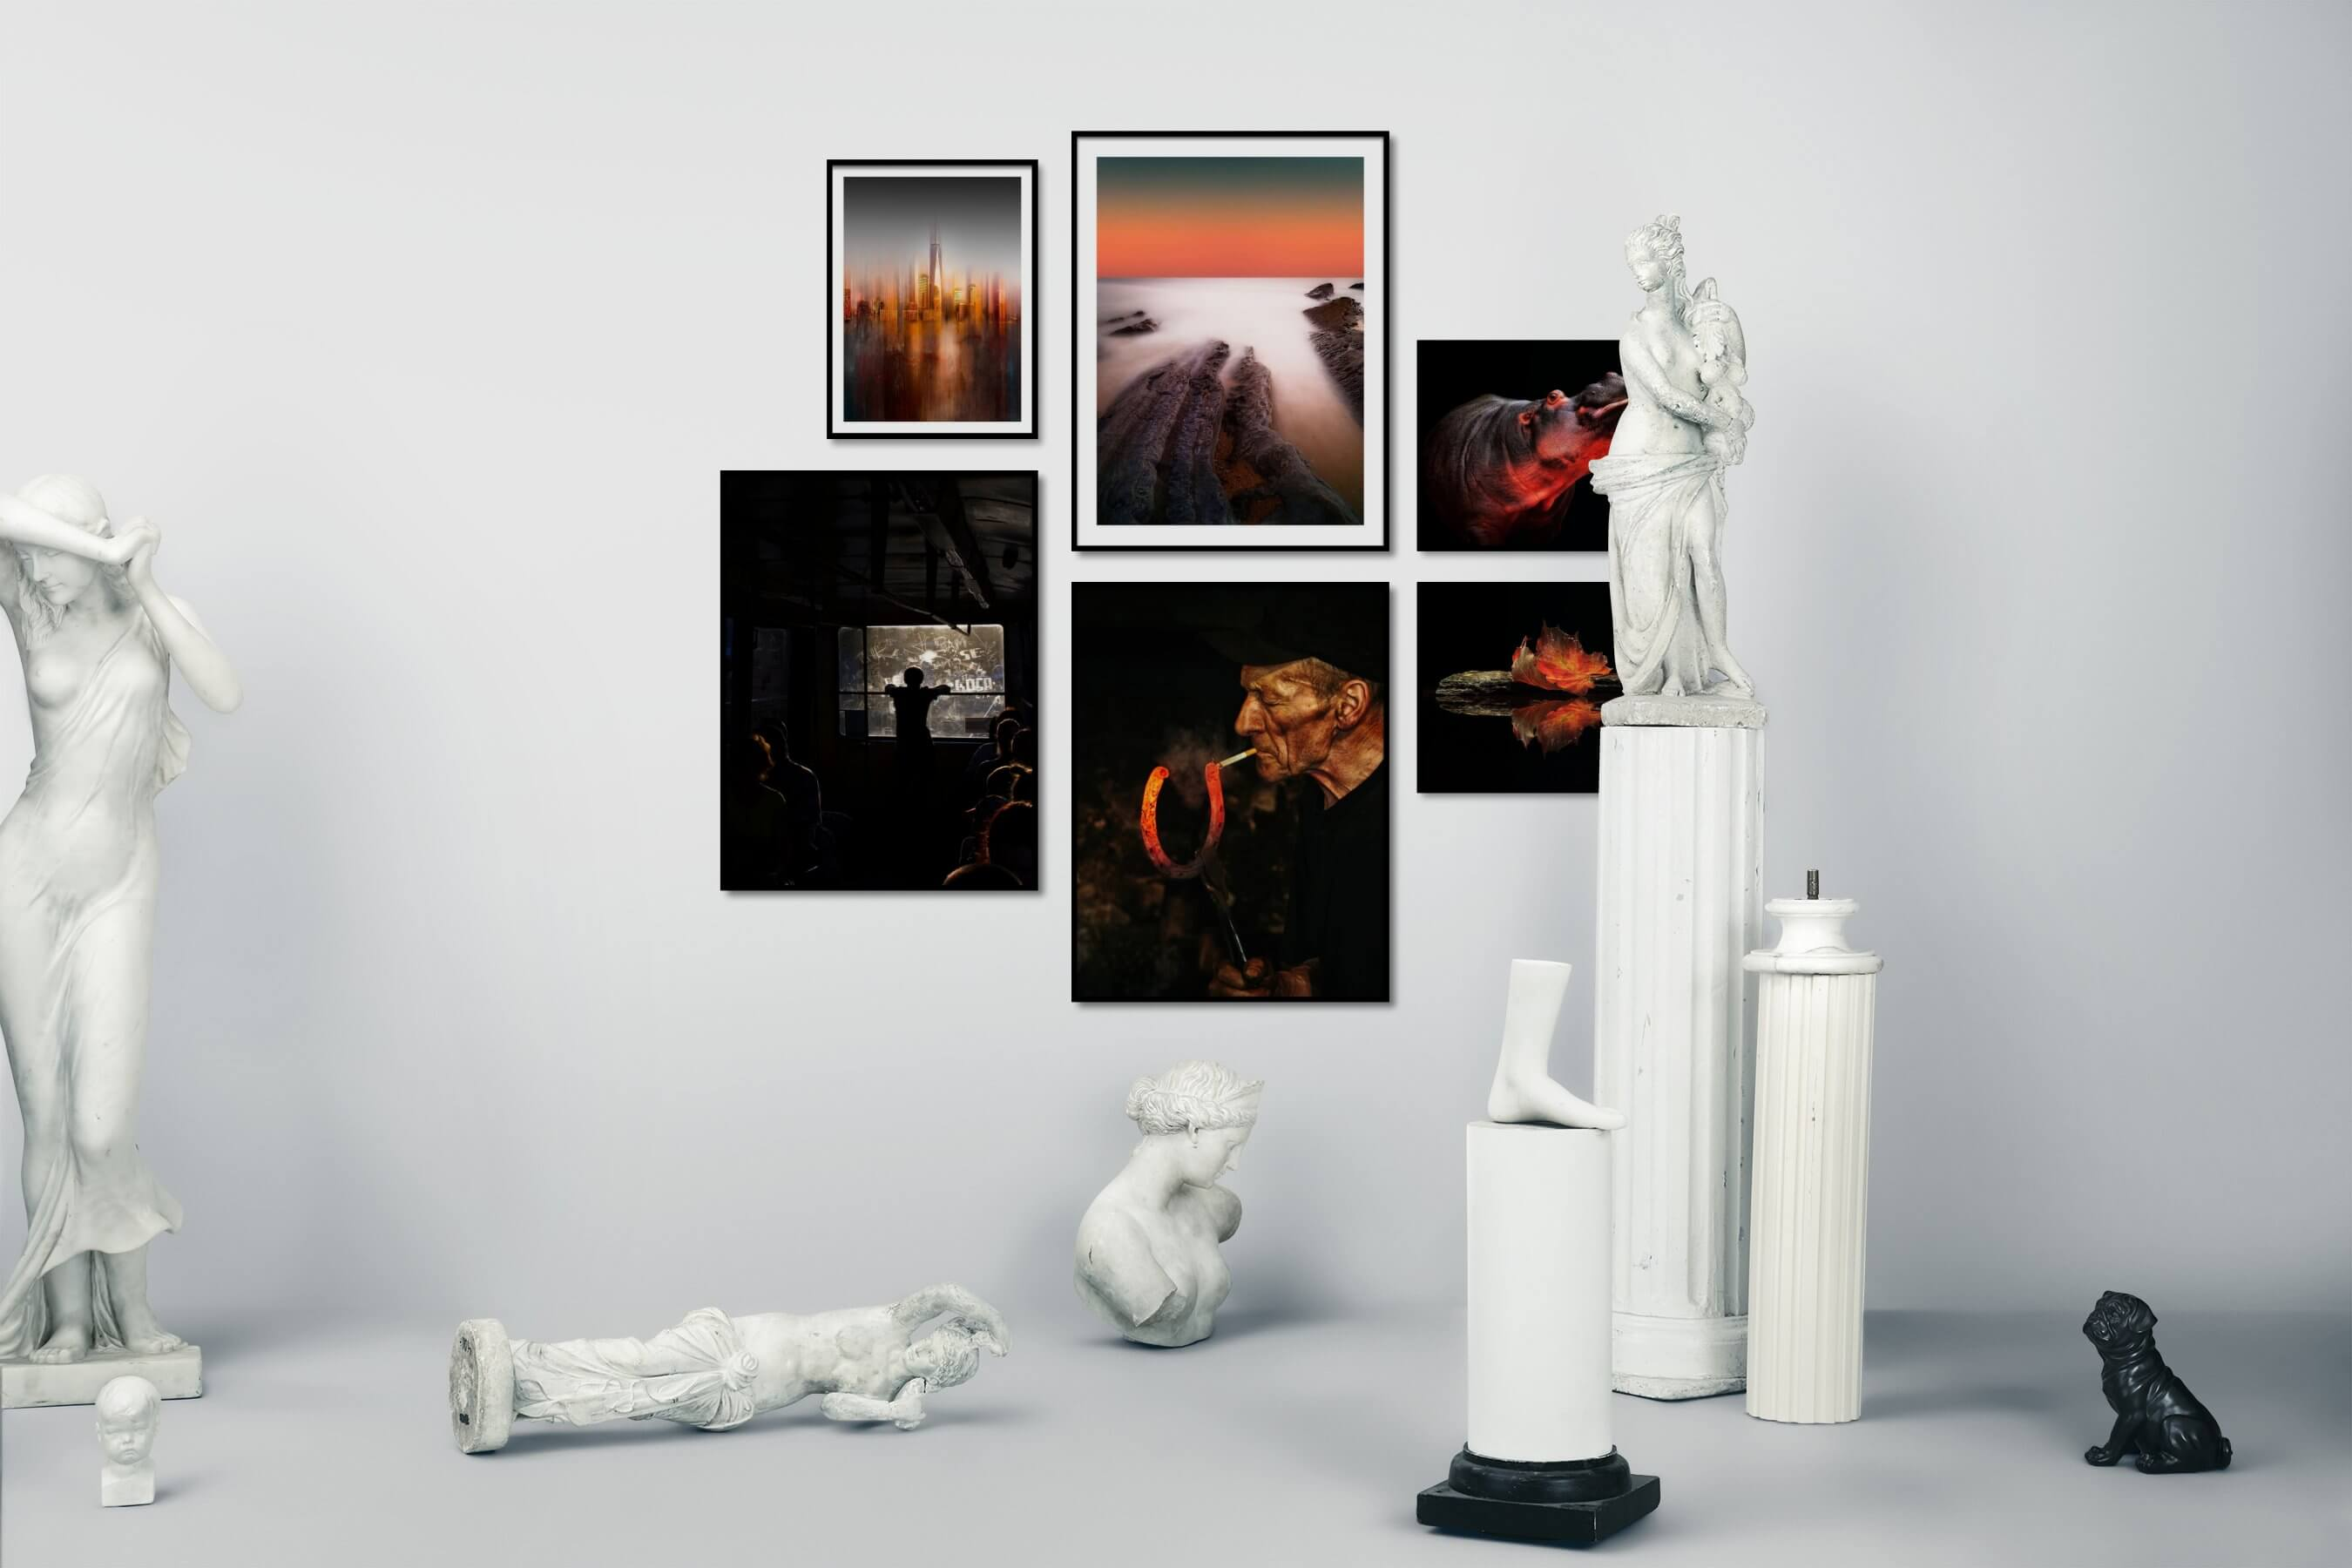 Gallery wall idea with six framed pictures arranged on a wall depicting For the Moderate, City Life, Americana, Beach & Water, Mindfulness, Dark Tones, Country Life, Animals, For the Minimalist, and Nature